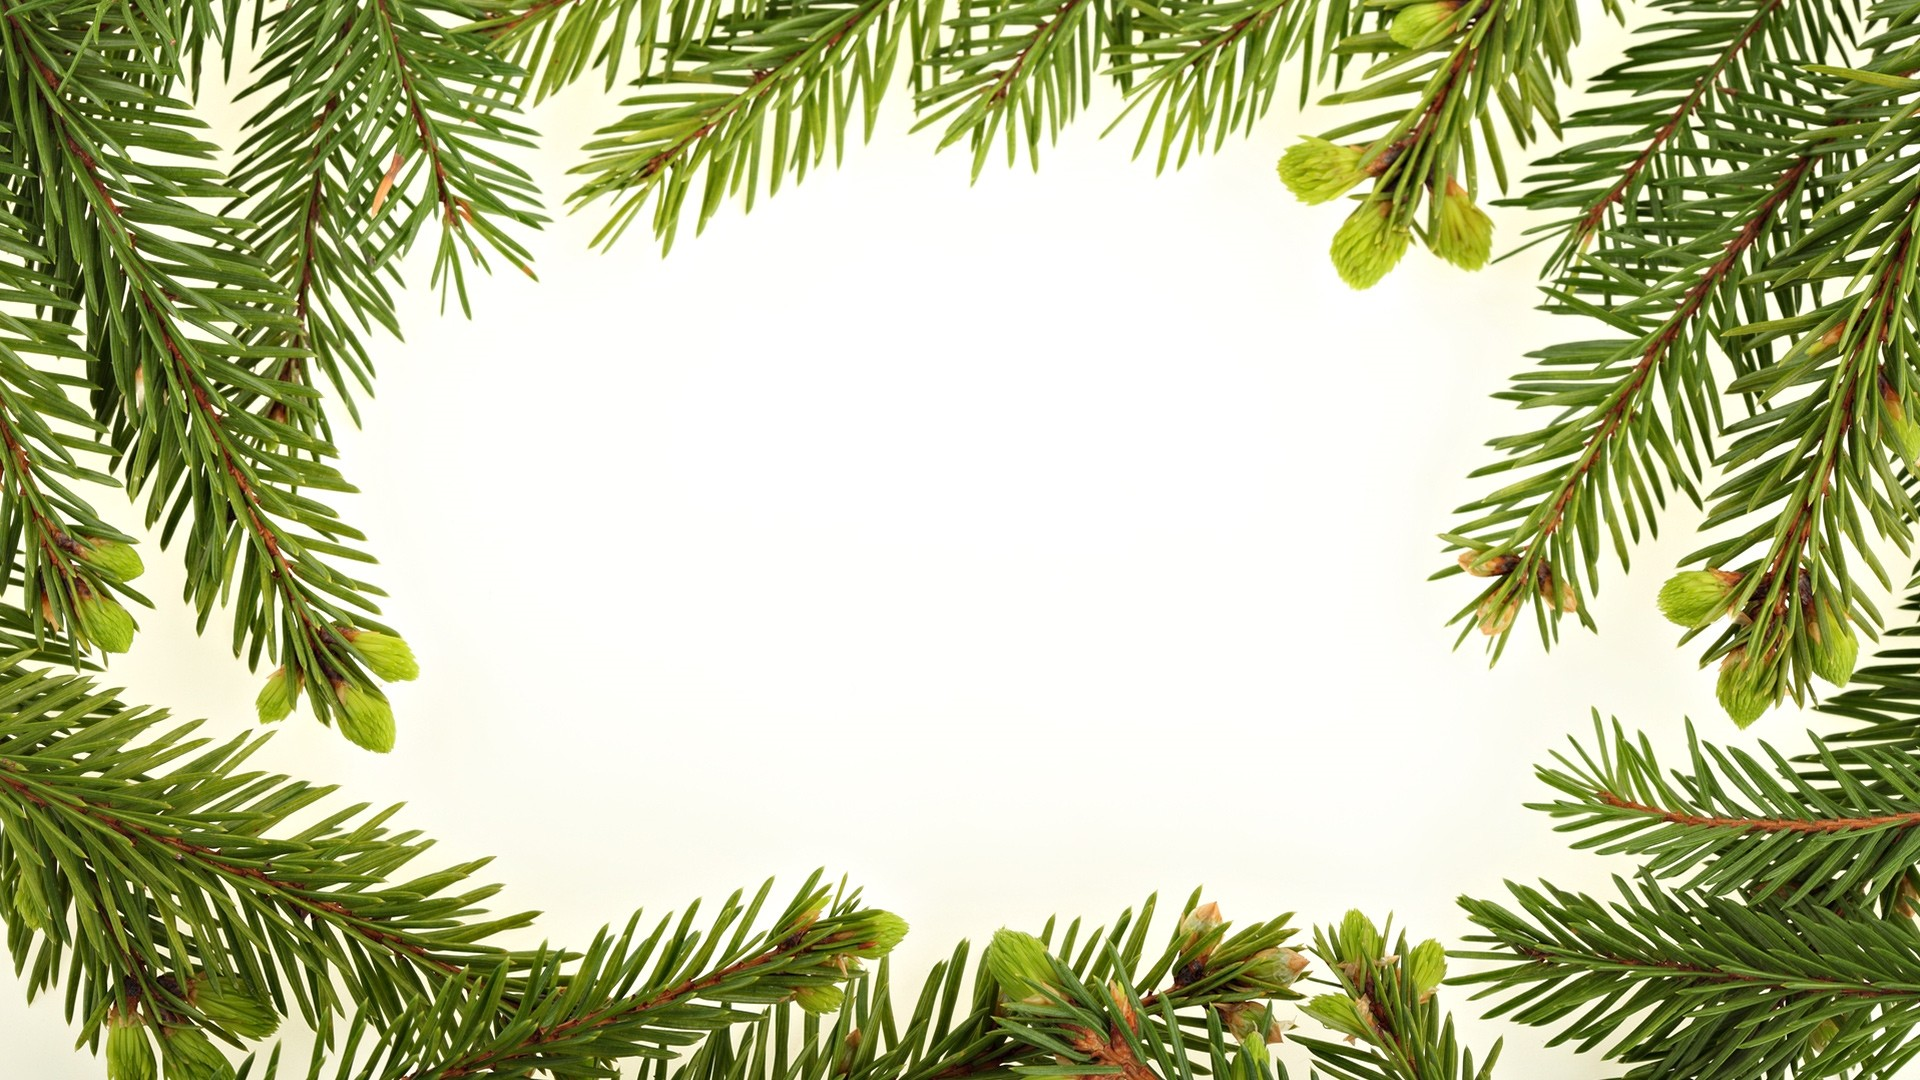 New Year Branch Frame Wallpaper for pc